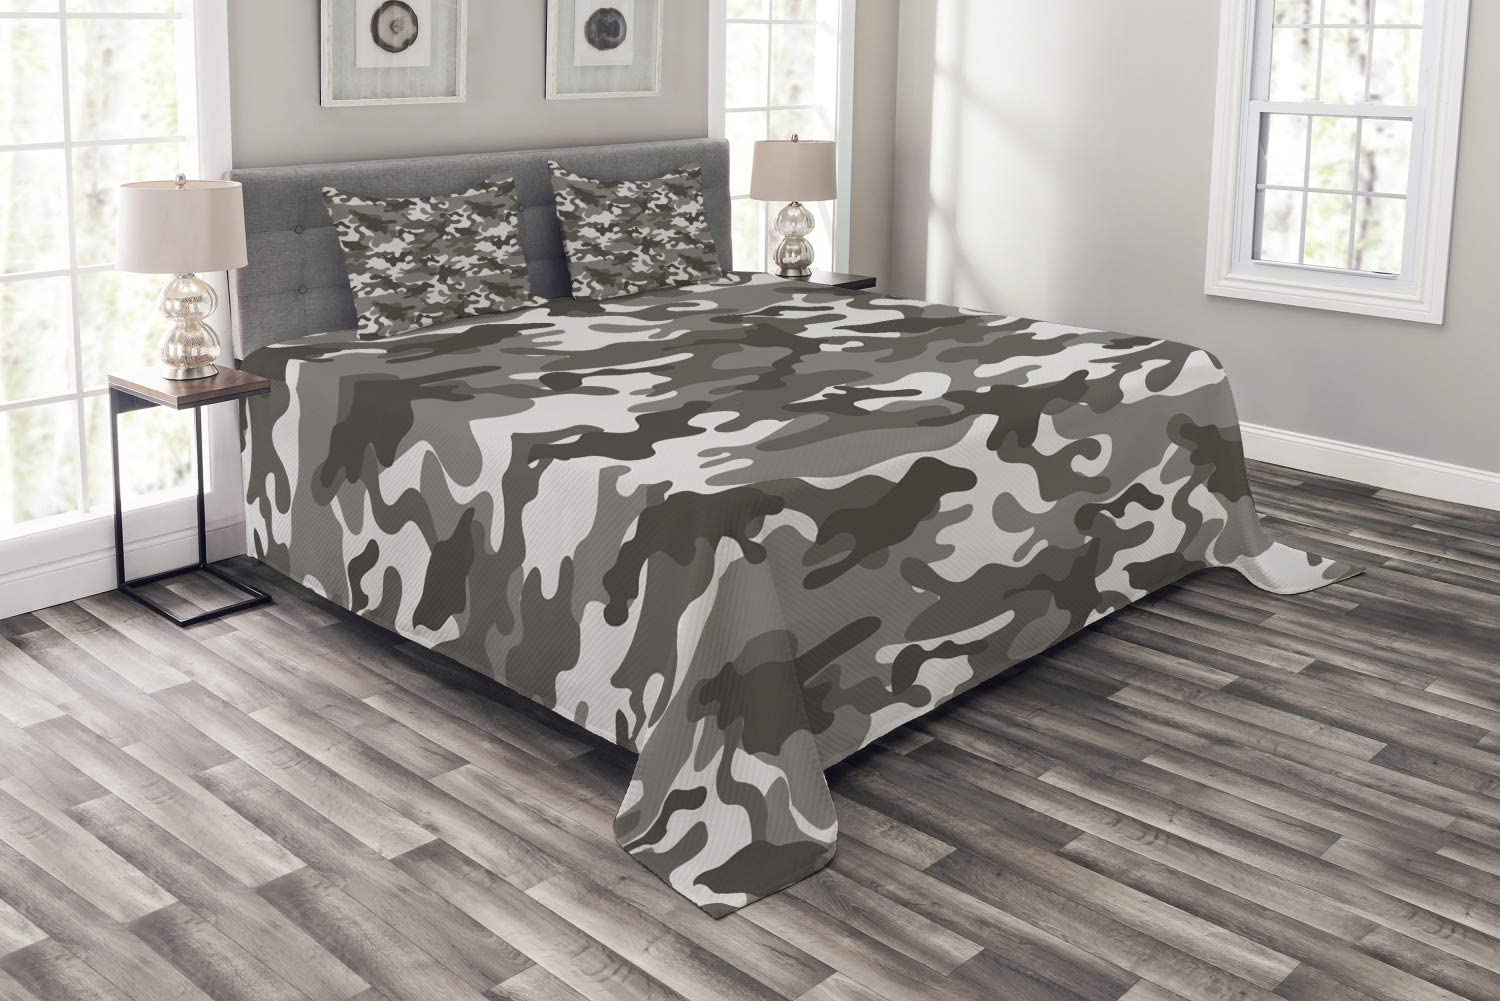 Ambesonne Camouflage Bedspread, Monochrome Attire Pattern Camouflage Inside Vegetation Fashion Design Print, Decorative Quilted 3 Piece Coverlet Set with 2 Pillow Shams, Queen Size, Grey Coconut